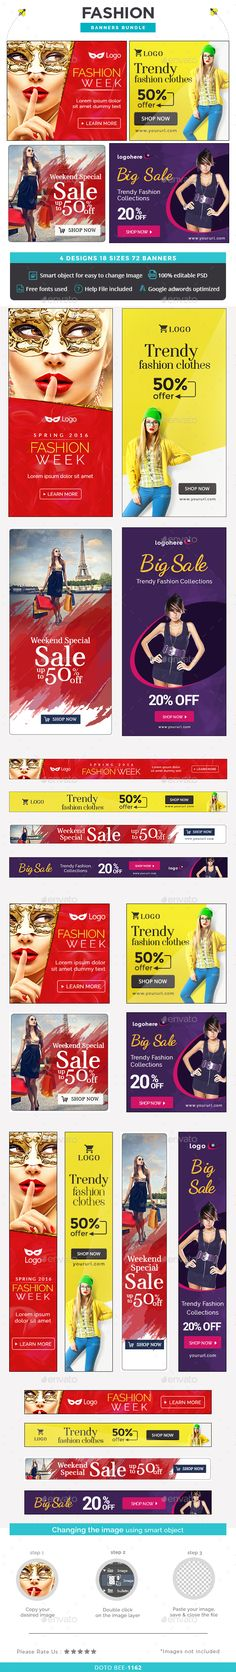 Fashion Web Banners Bundle - 4 Sets Template PSD. Download here…